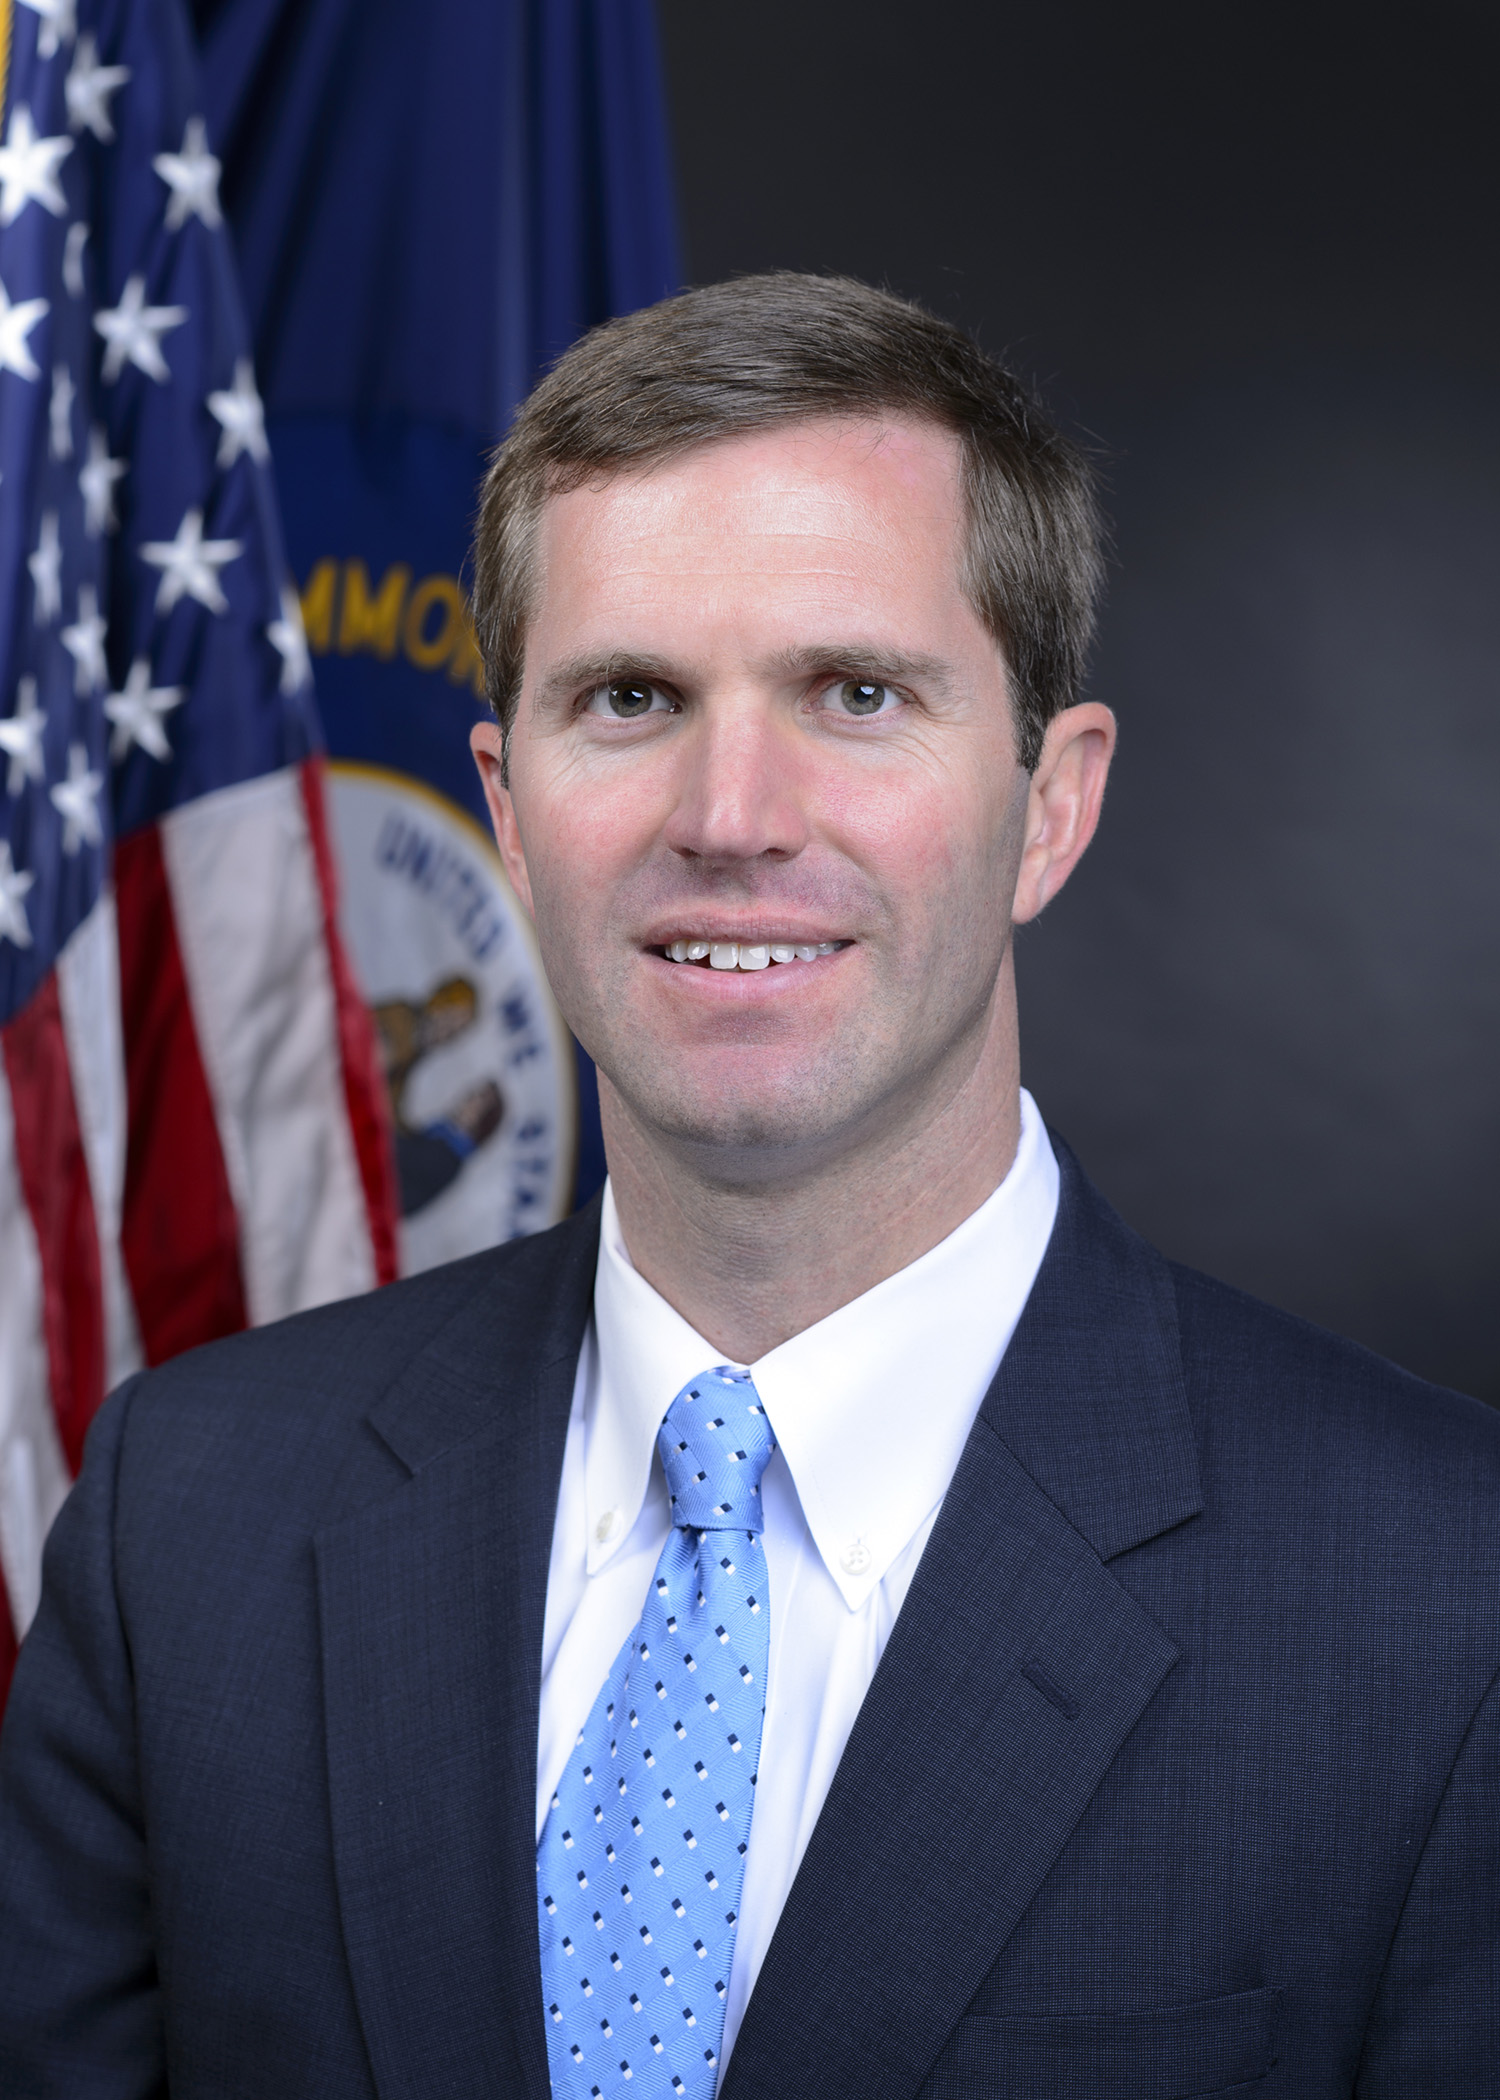 AndyBeshear_5x7